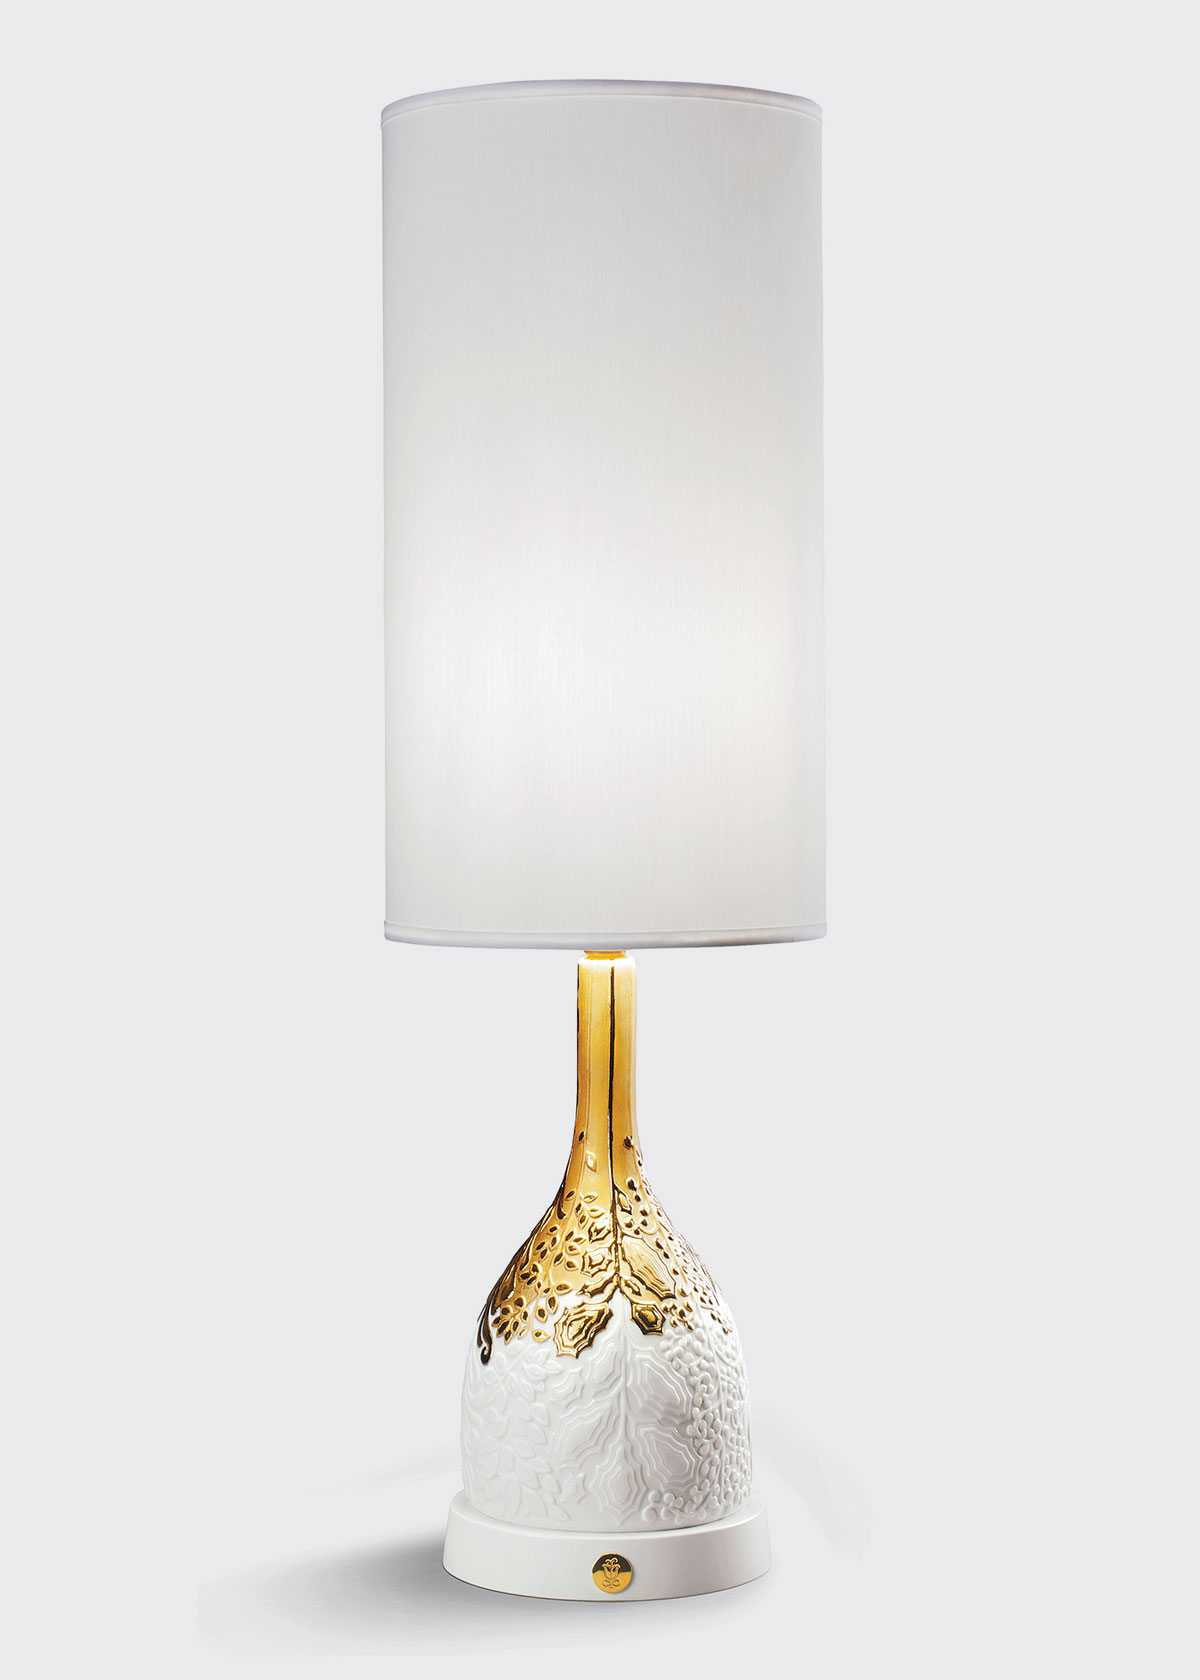 Lladrò NATUROFANTASTIC ORGANIC NATURE TABLE LAMP